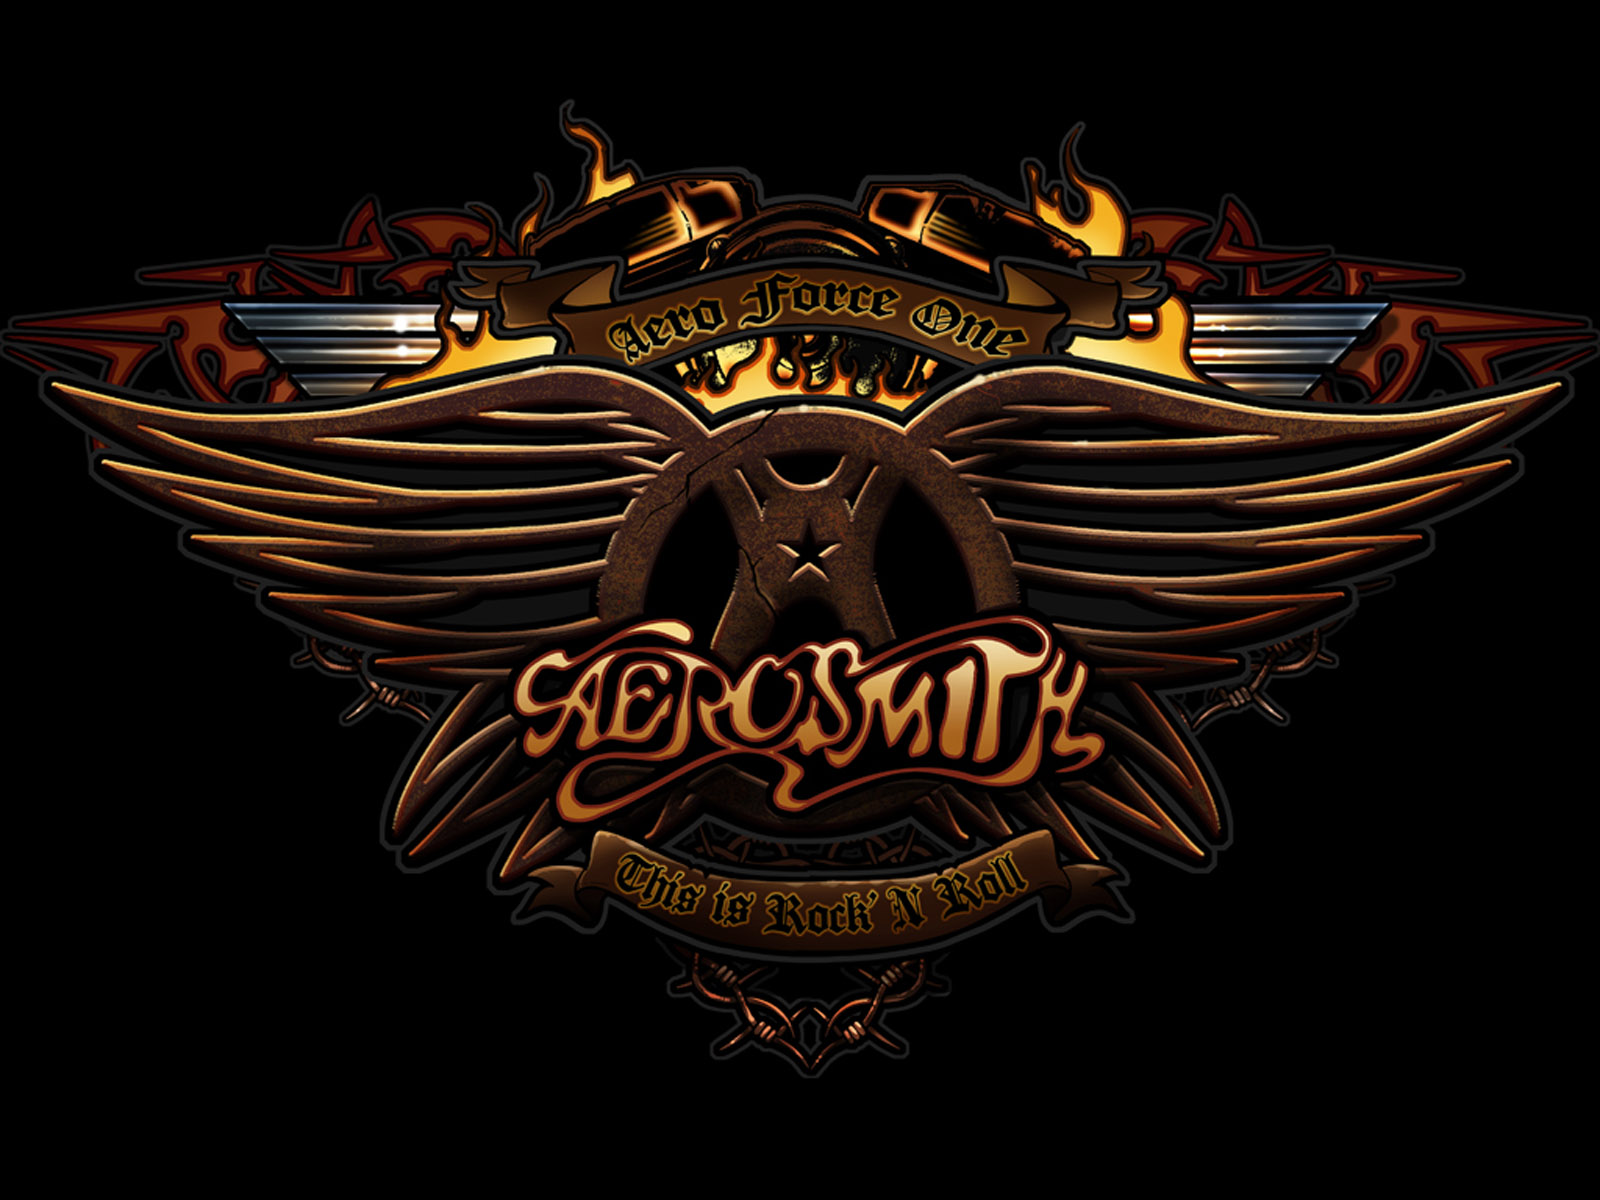 Aerosmith logo Wallpaper